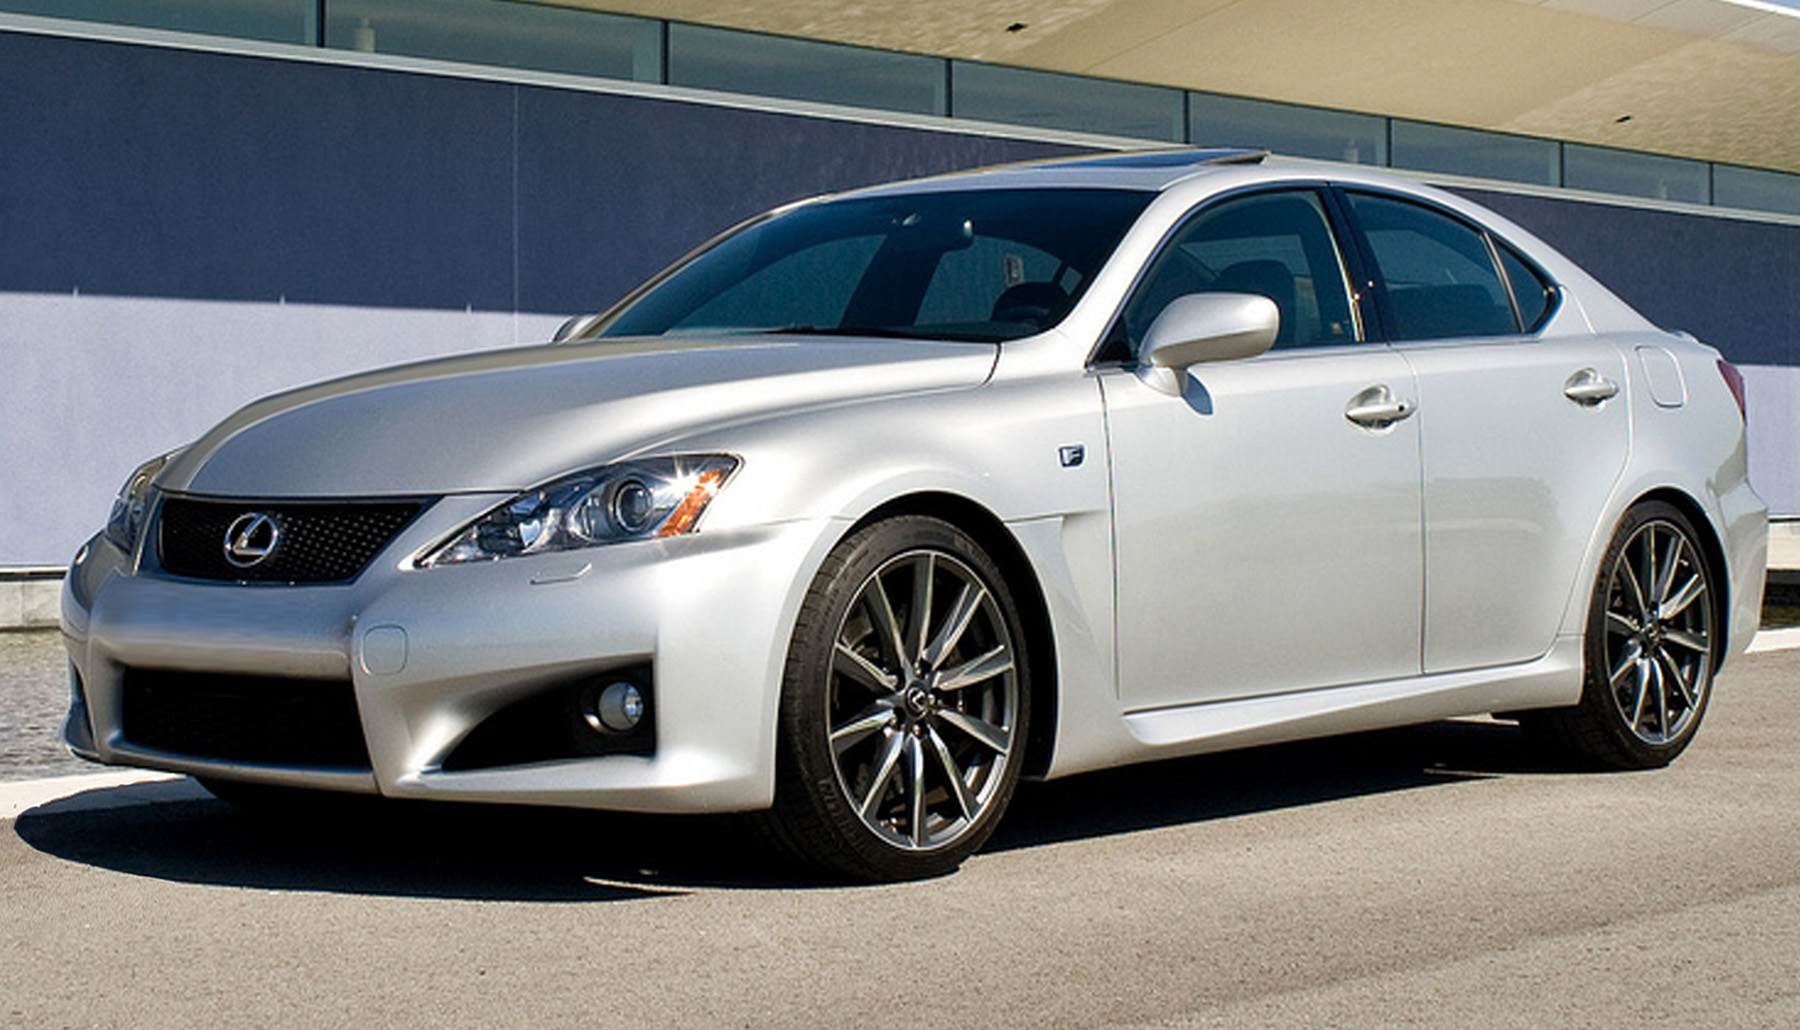 09_Lexus_IS-F_Mercury_Metallic.jpg